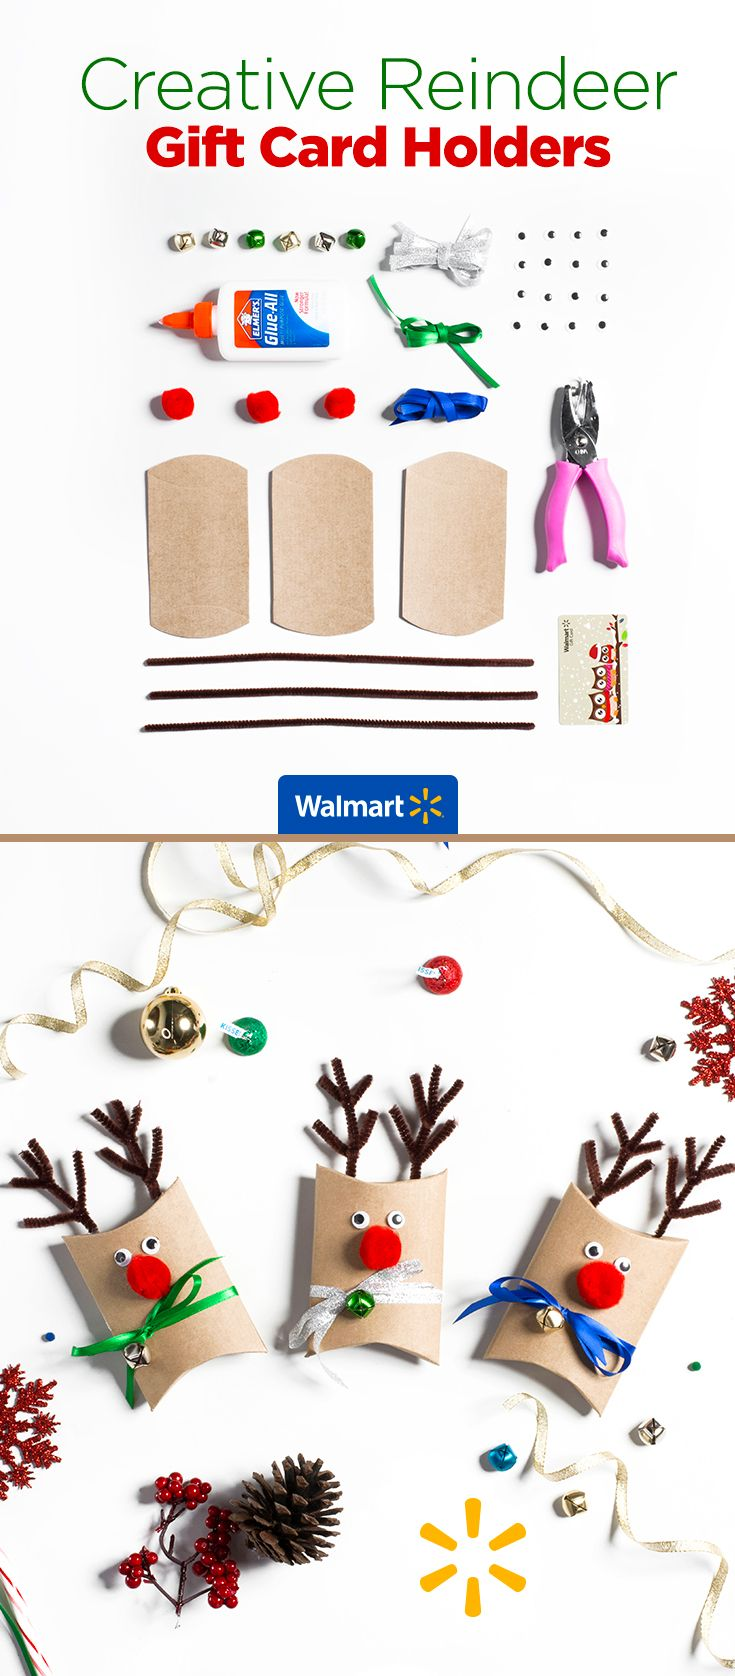 Creative Reindeer Gift Card Holders | Walmart - Craft these festive card holders out of pipe cleaners, pom poms and jingle bells. Directions for these and similar ideas are at Walmart.